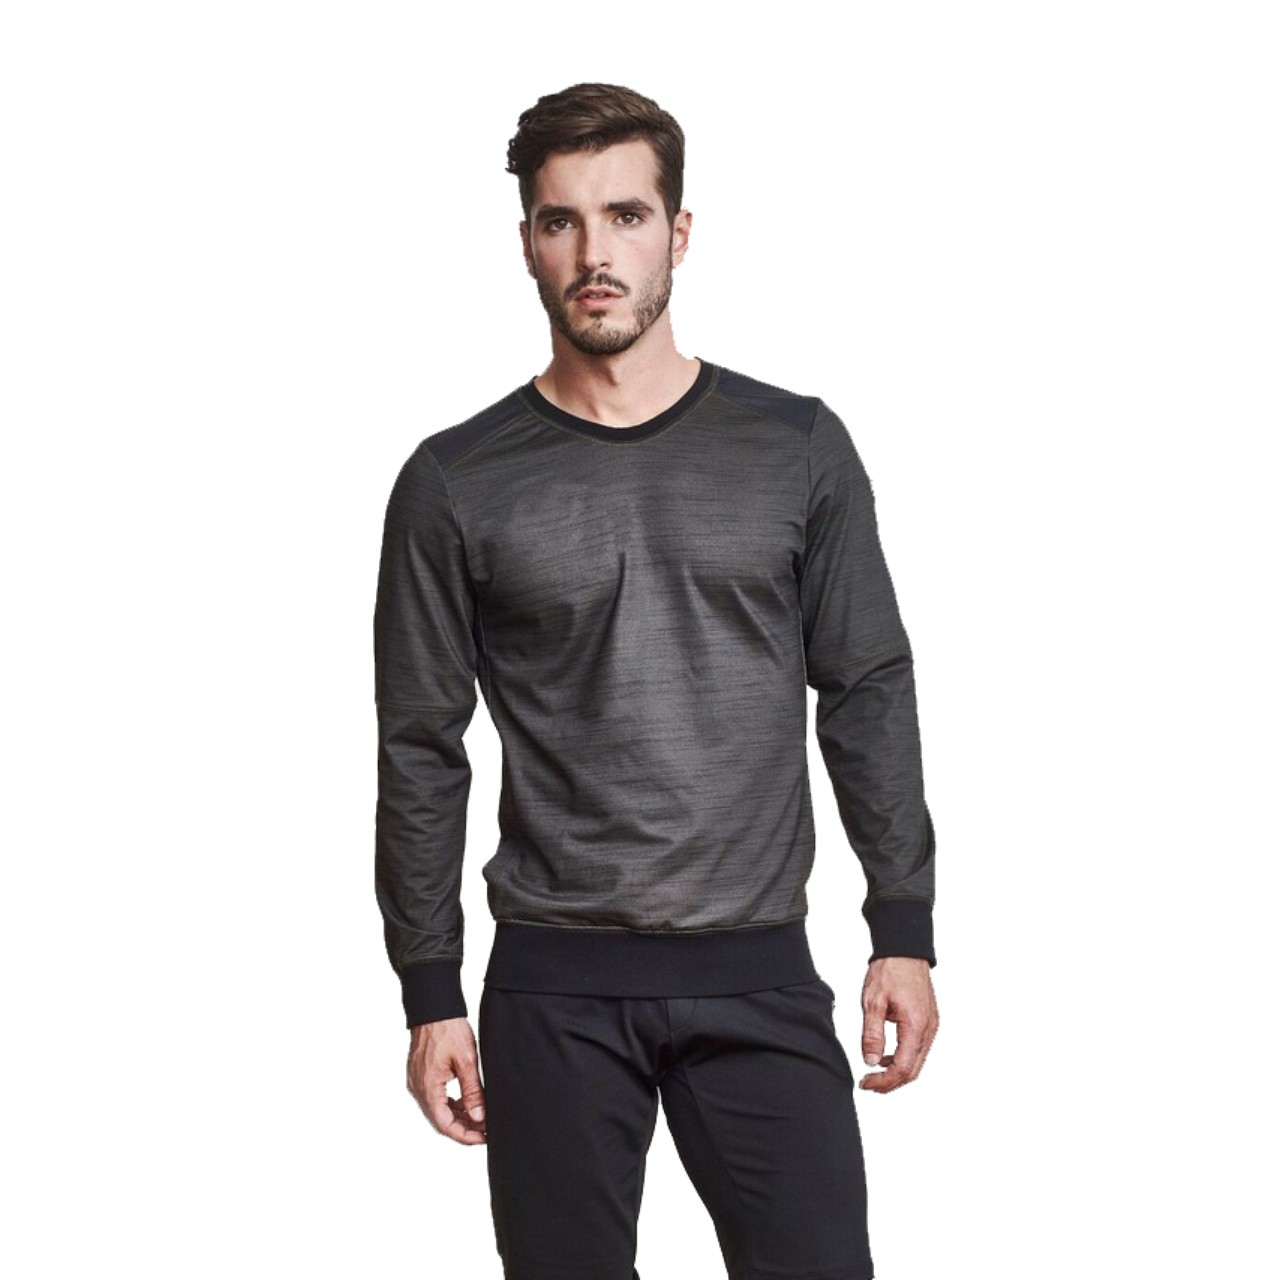 EYSOM The Refined Sweatshirt in Olive Green